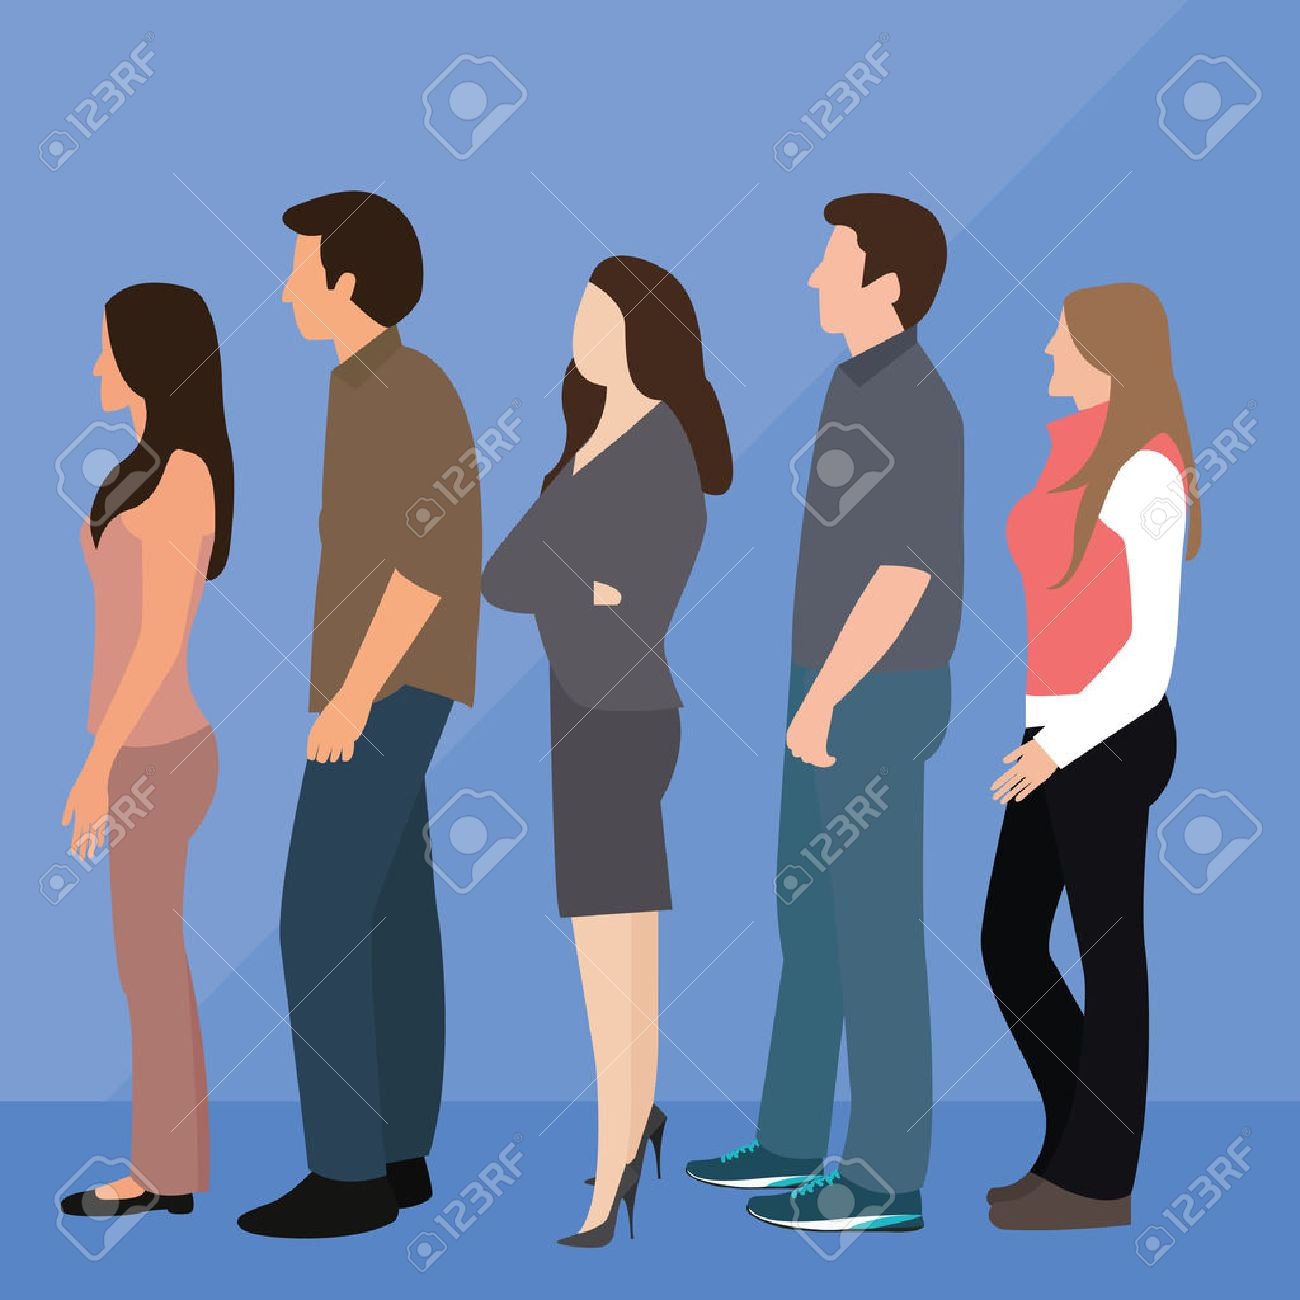 group of people man woman queue line standing waiting vector - 53583181